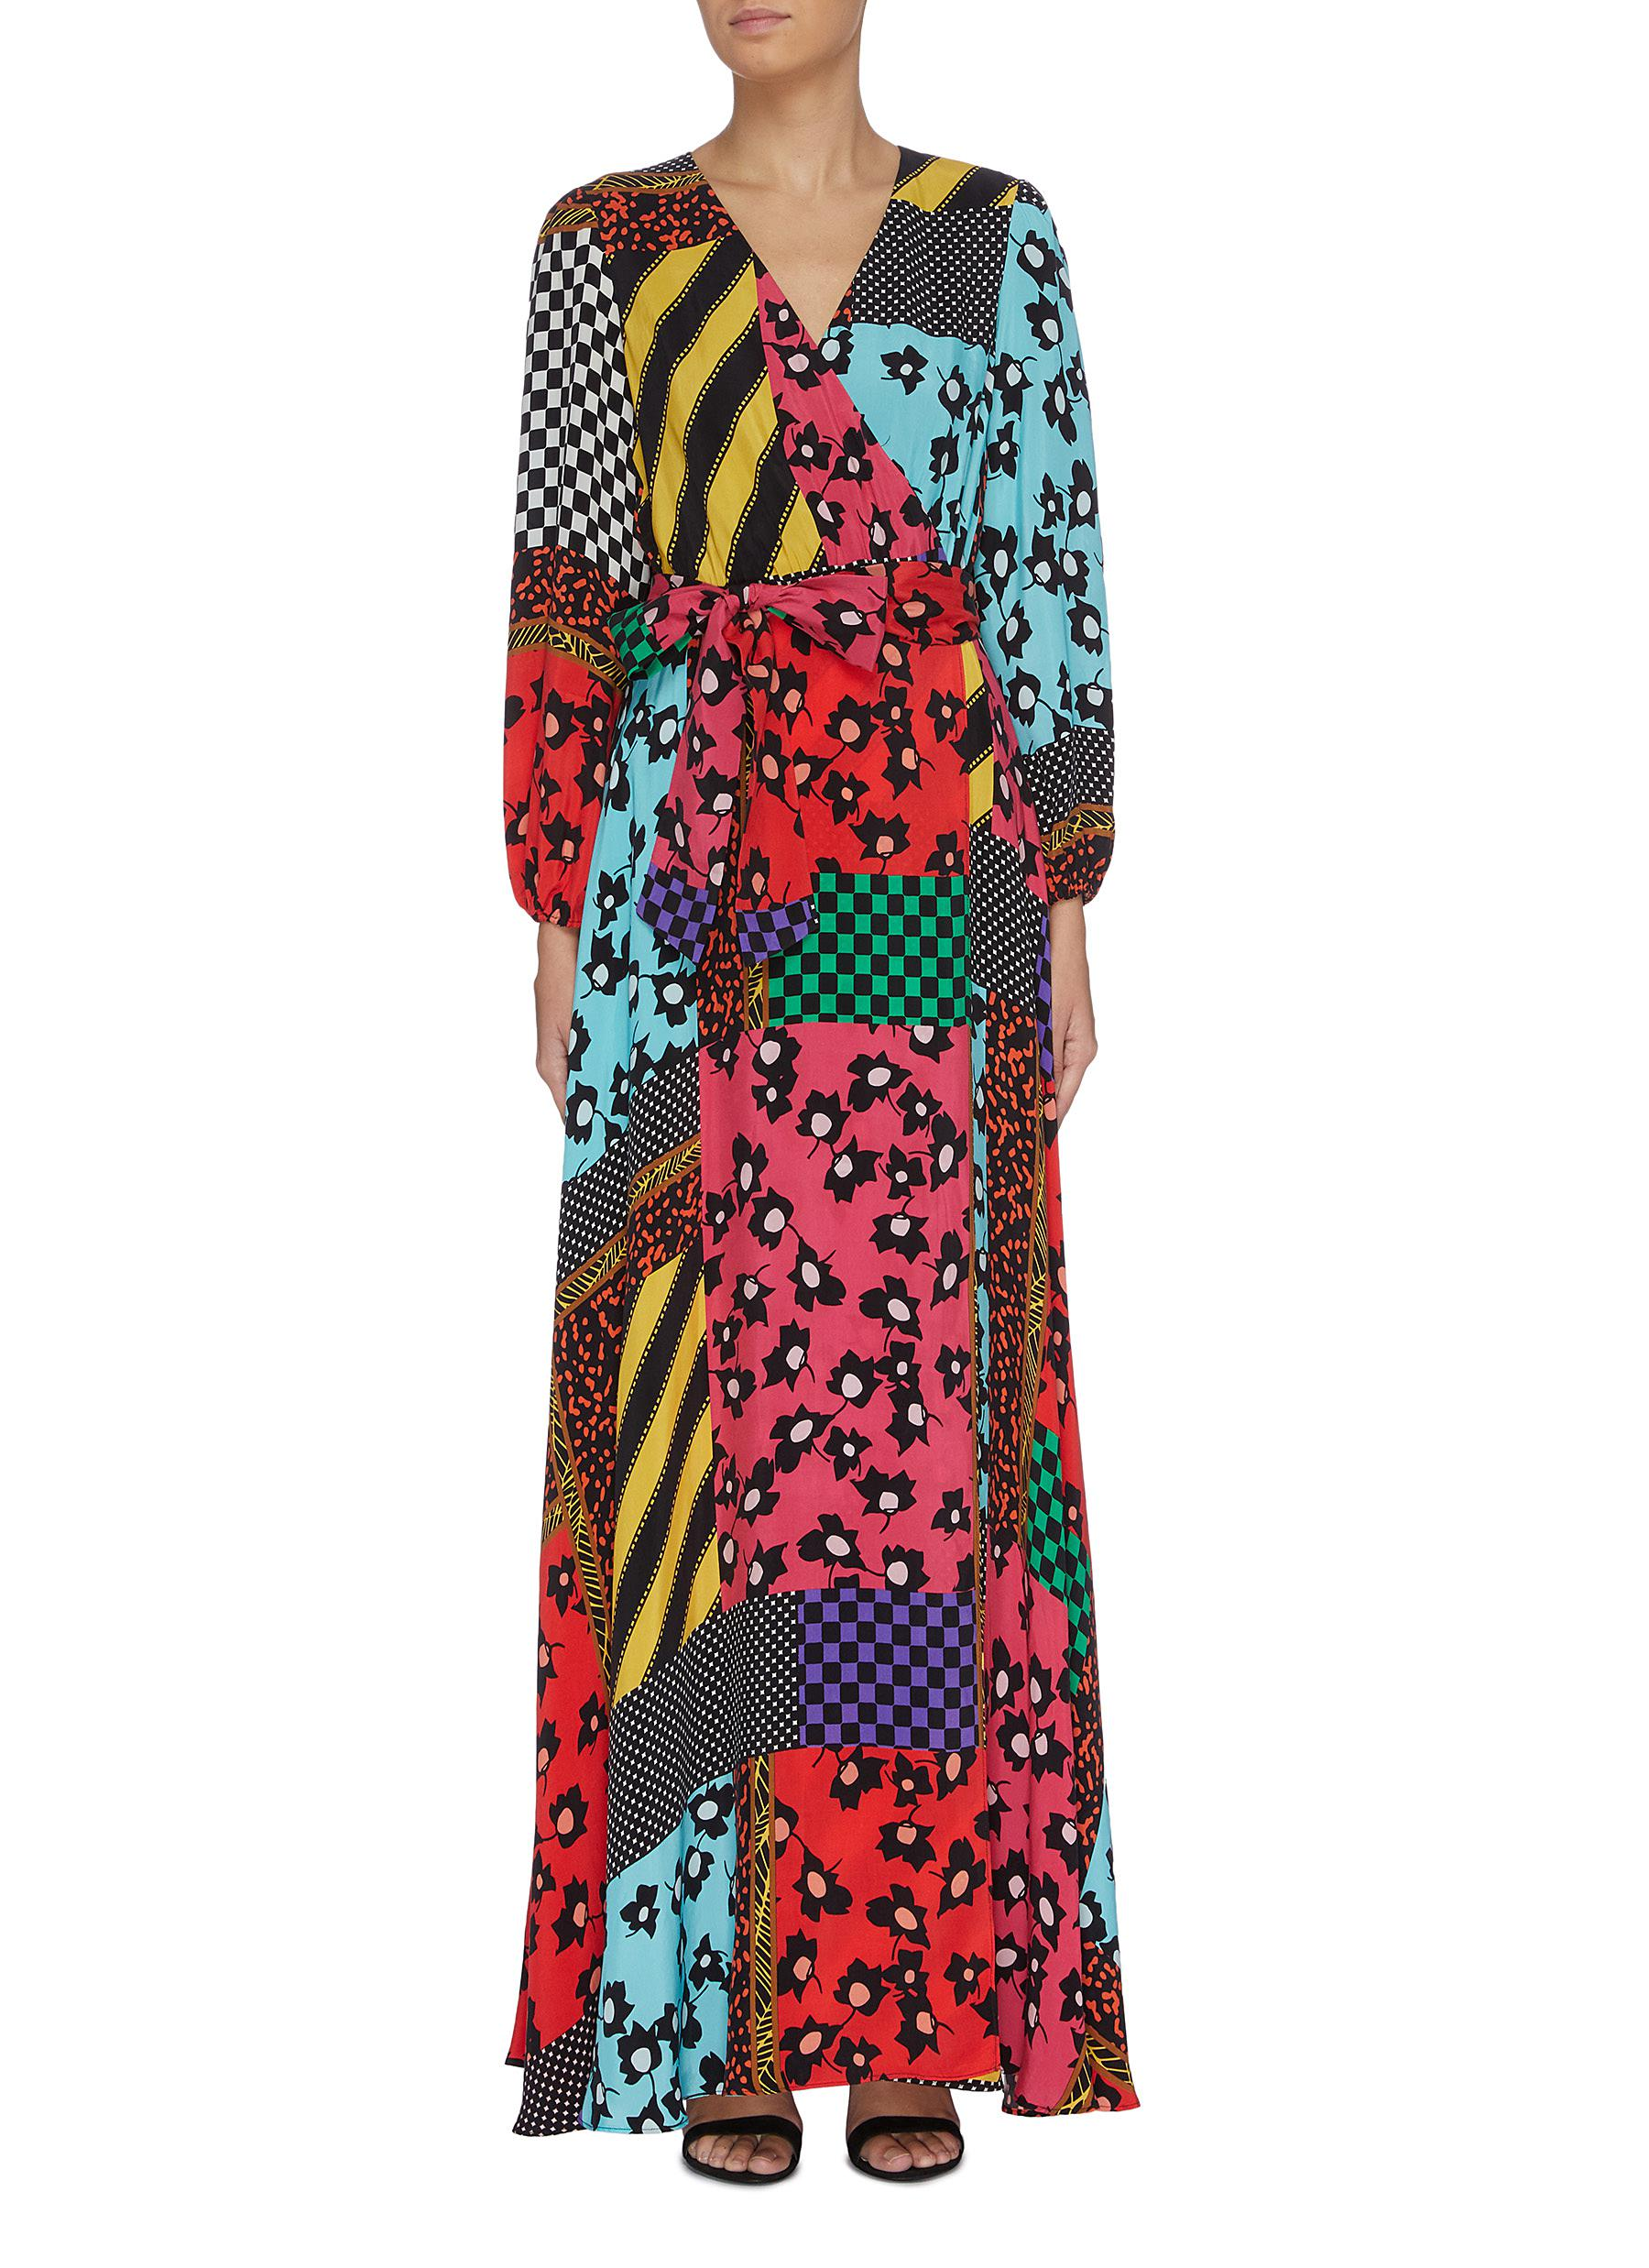 Coco floral print panelled colourblock maxi dress by Alice + Olivia